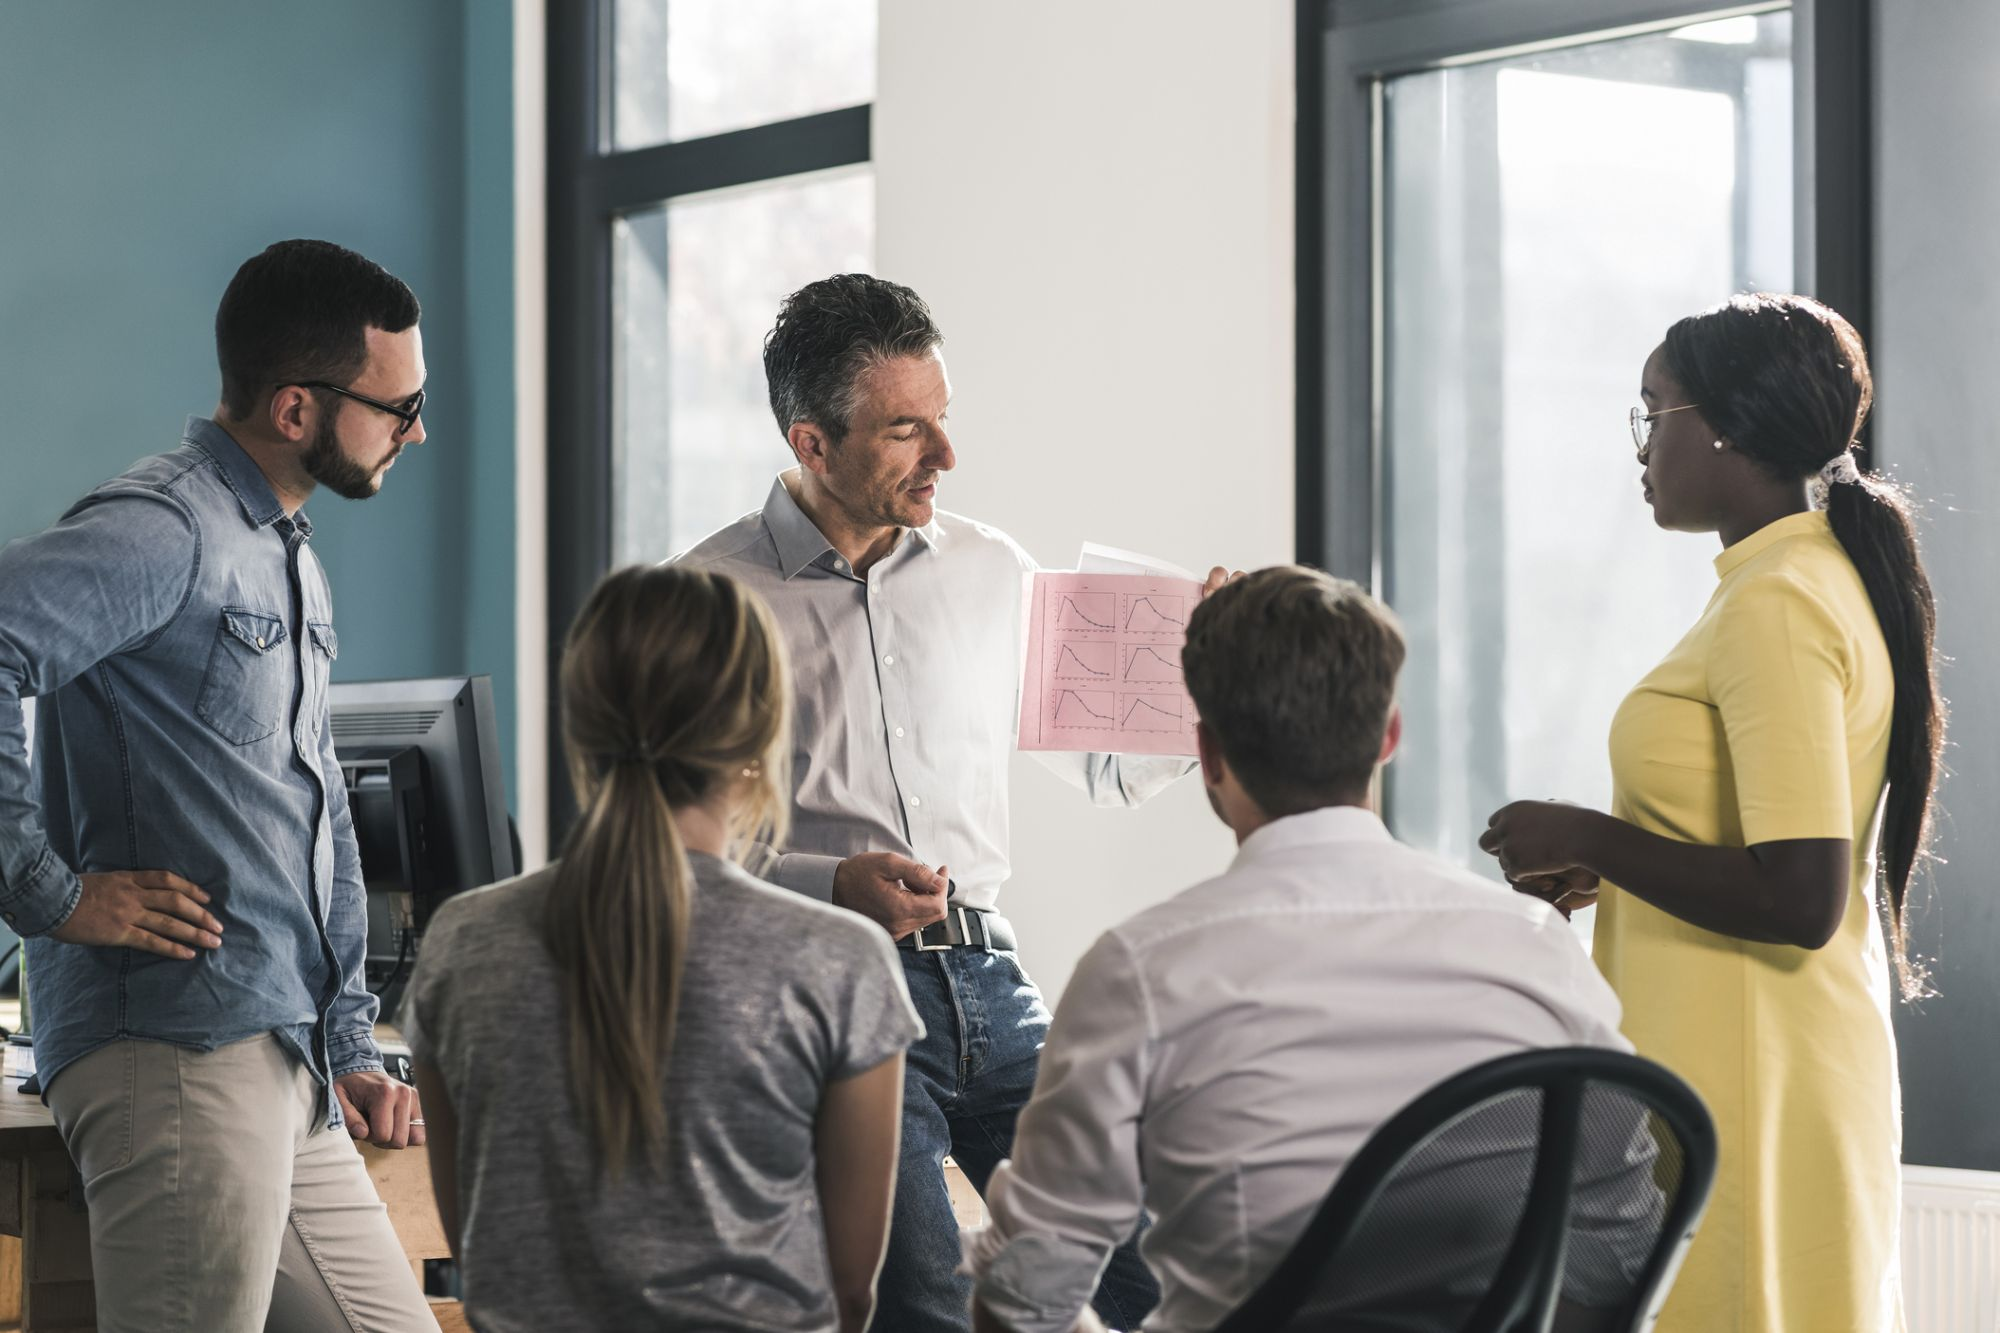 This Technology Can Help Leaders Better Understand Their